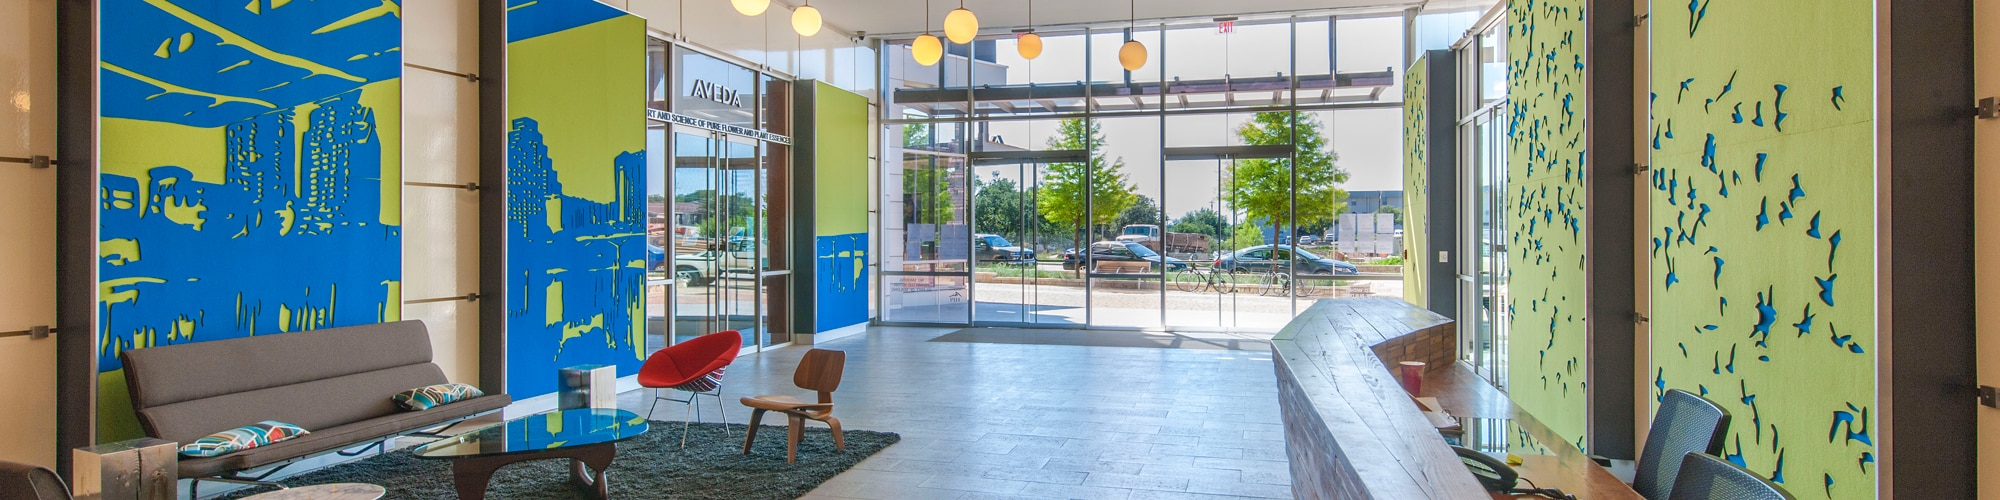 University Park Lobby | 3300 N. Interstate 35 in Austin, Texas